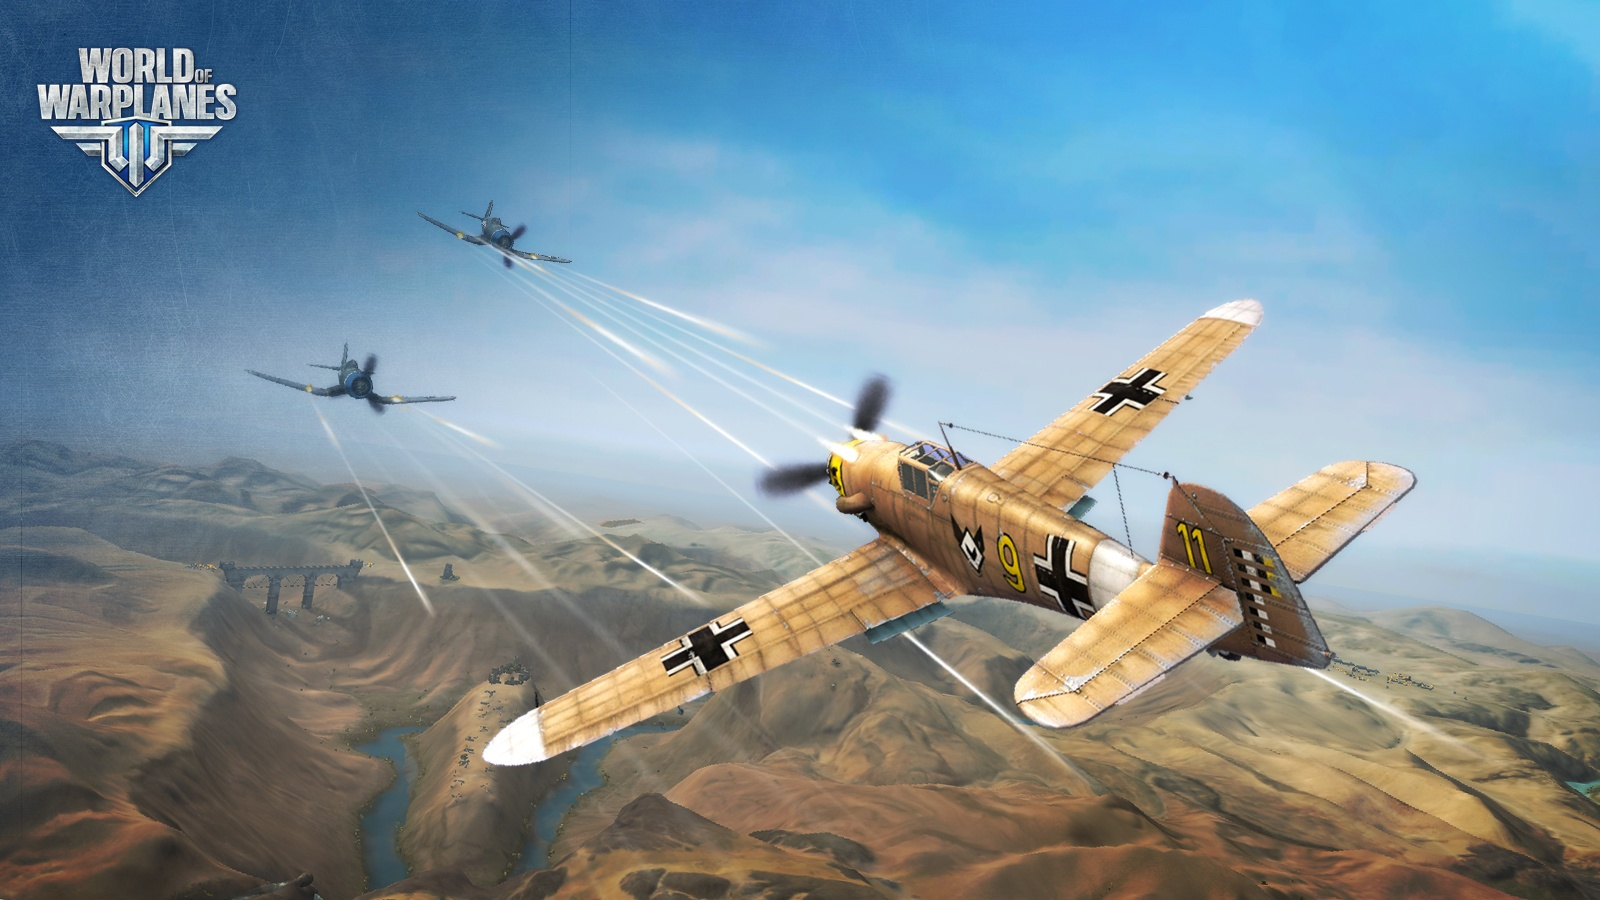 ... World Of Warplanes Finally Launches Today ...